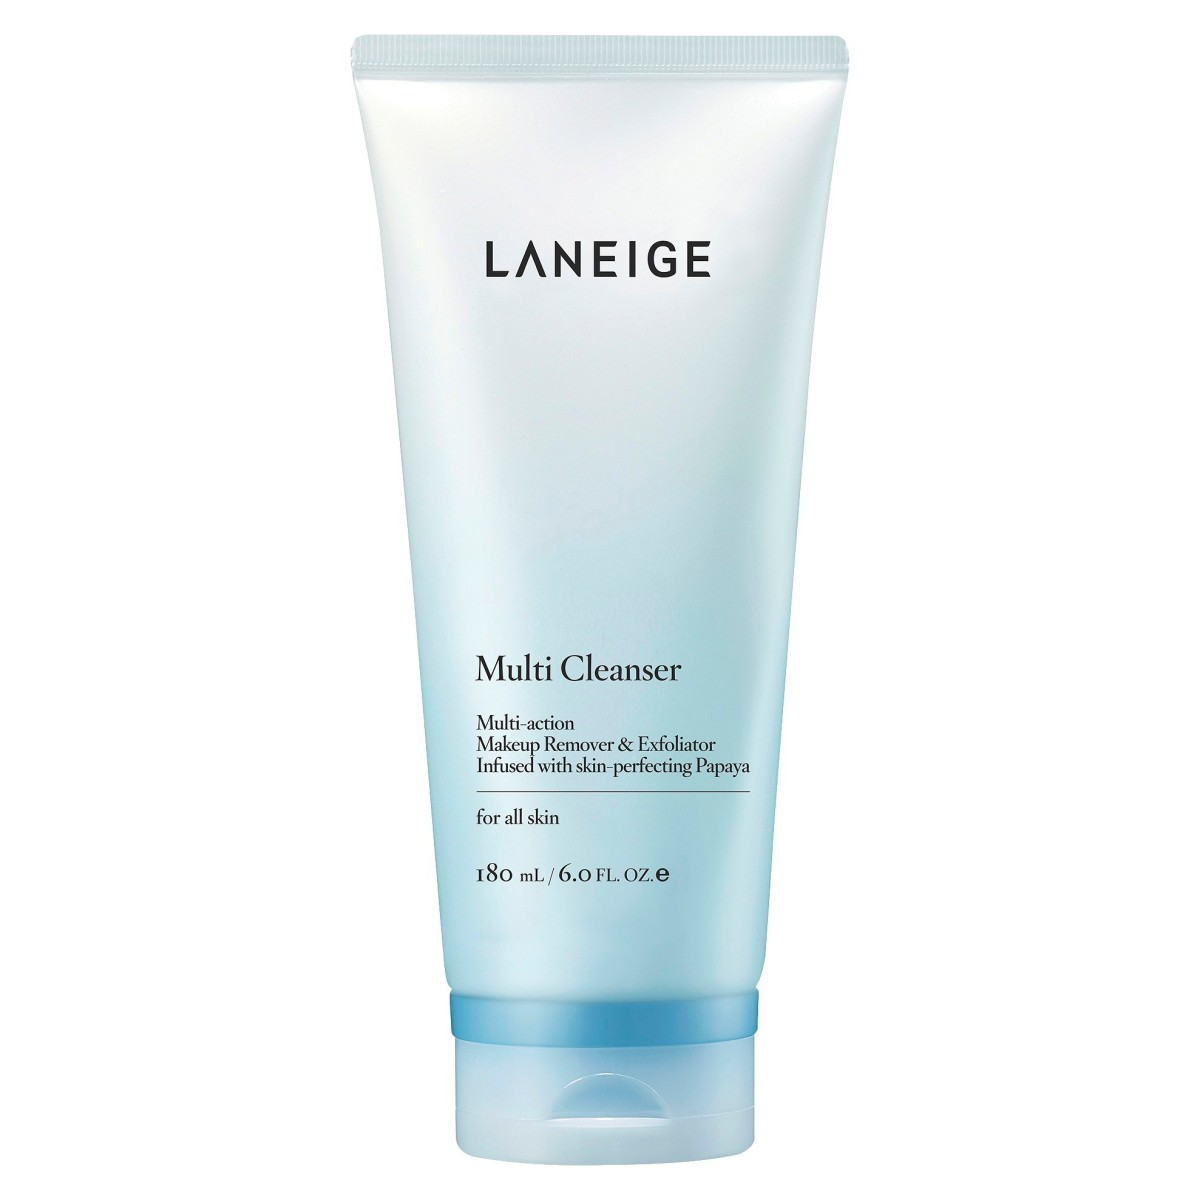 Laneige multi cleanser, $20.90, available at Target